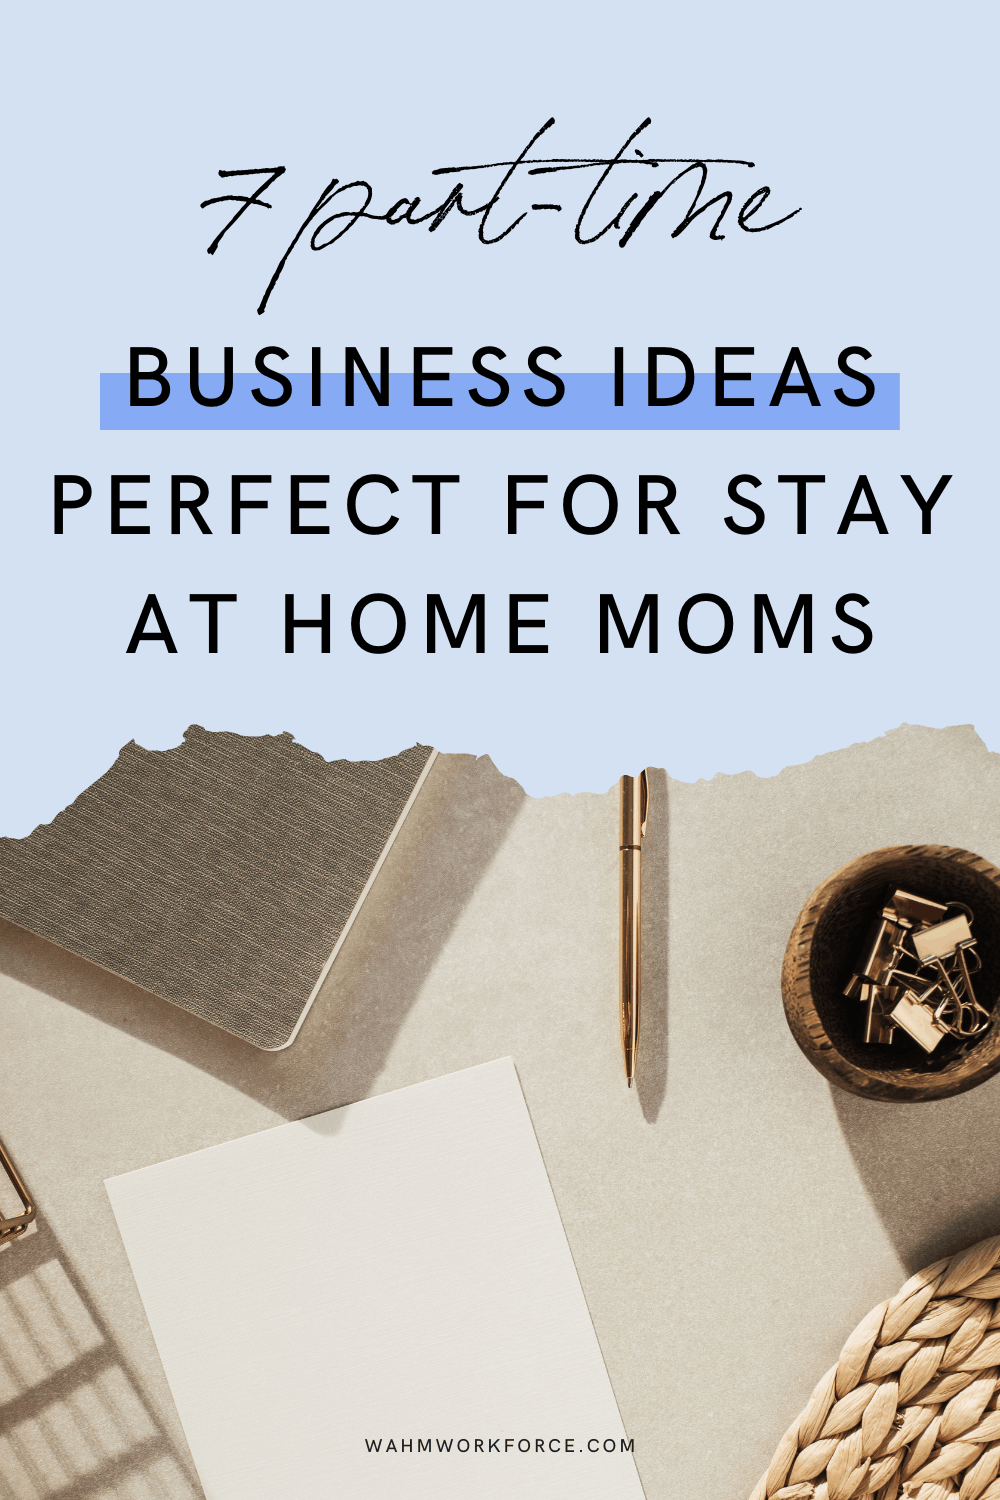 7 part-time business ideas perfect for stay at home moms